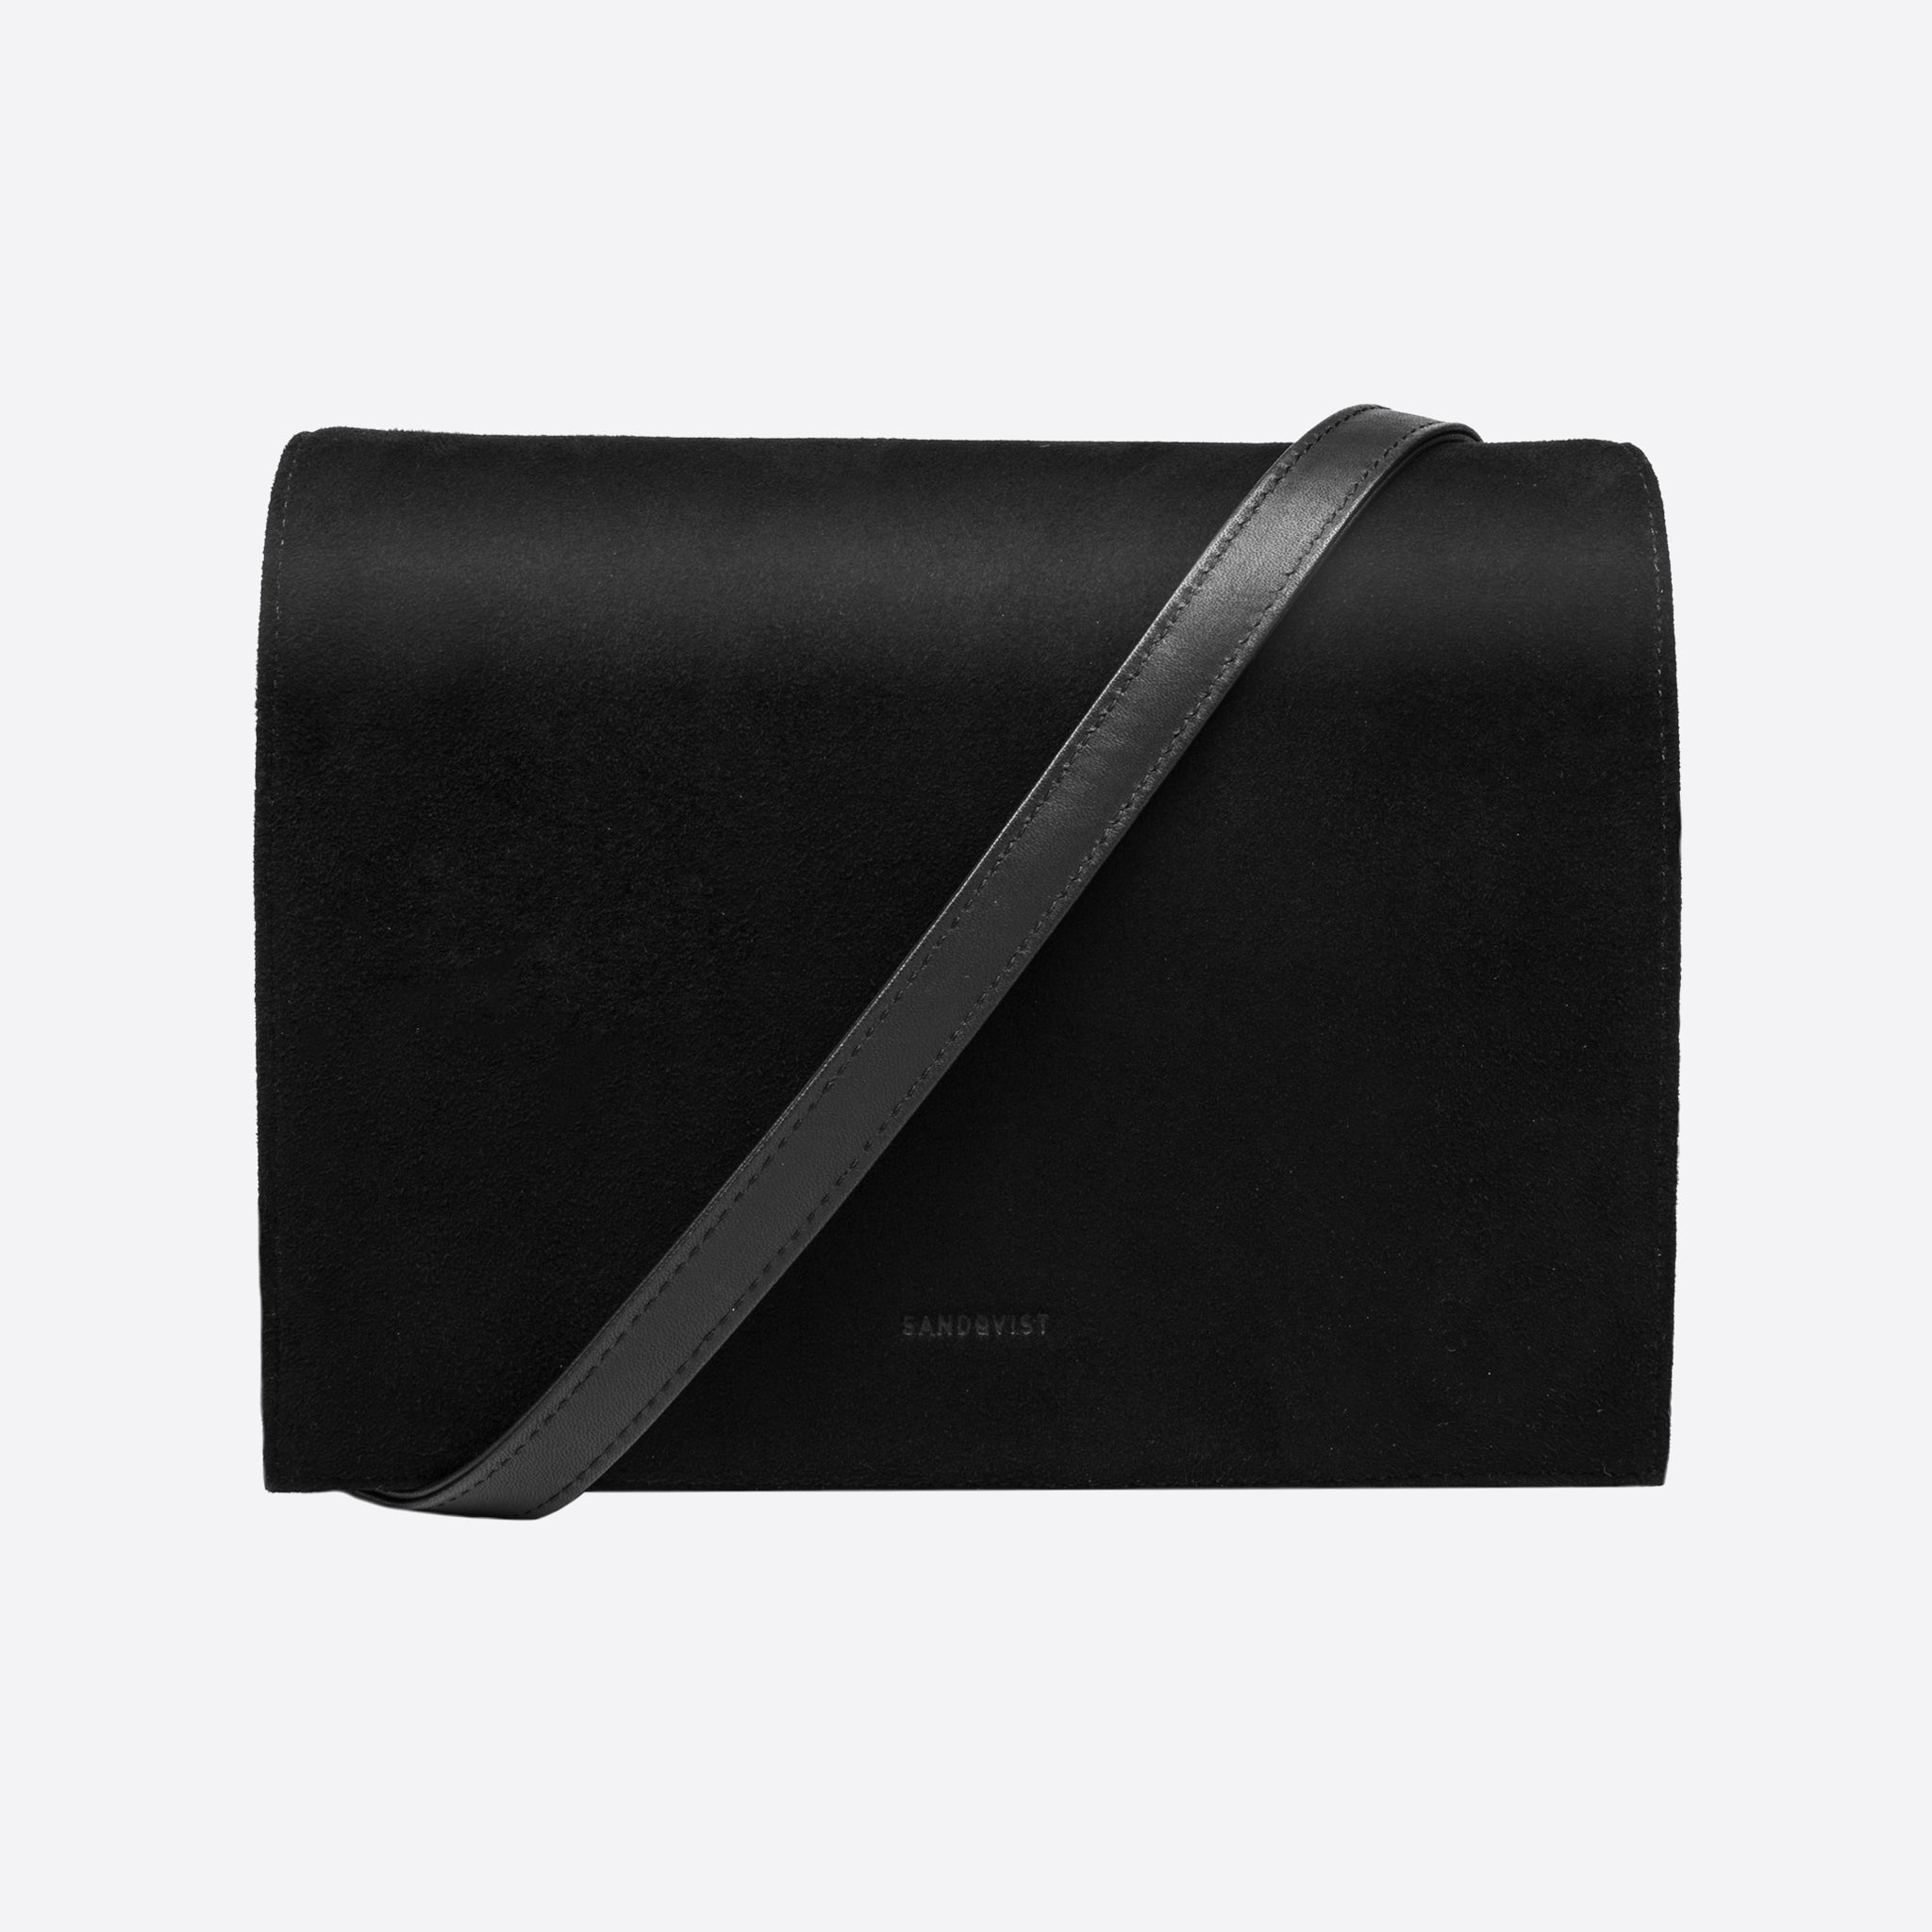 Sandqvist Marja Bag in Black